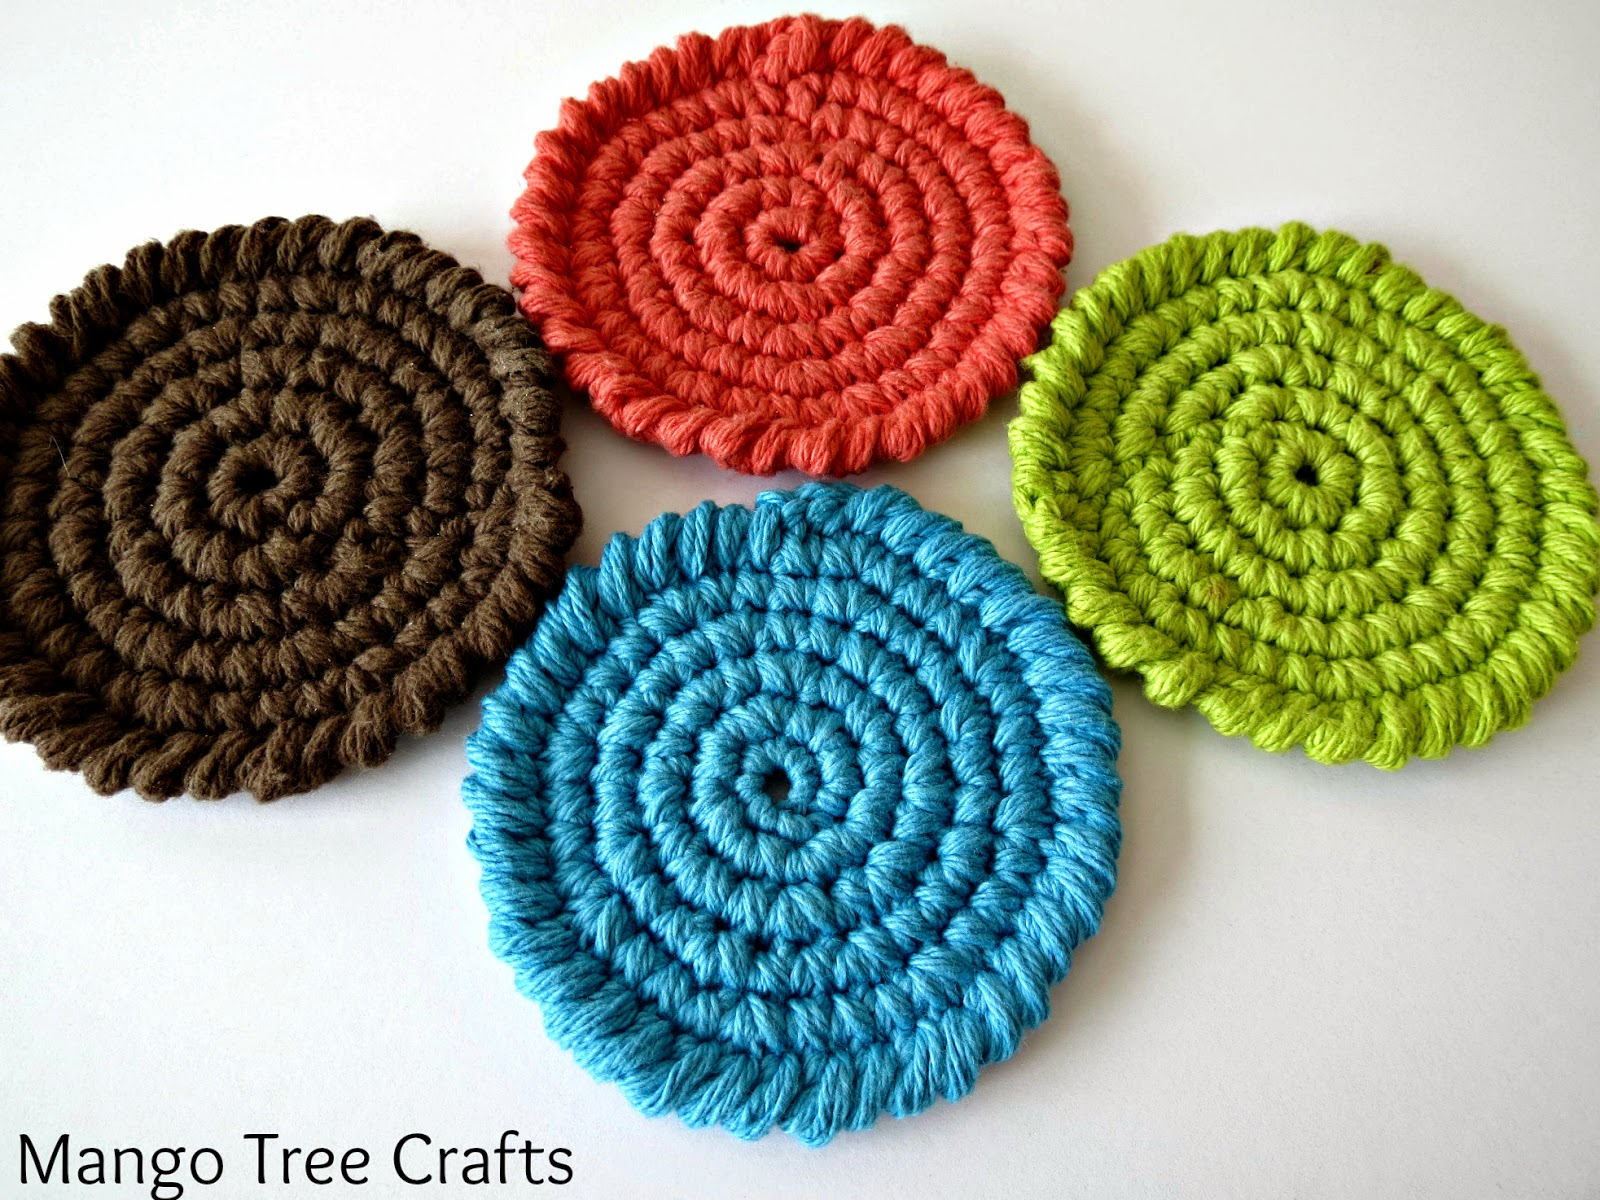 Crocheting Coasters : Crochet Coasters Free Pattern